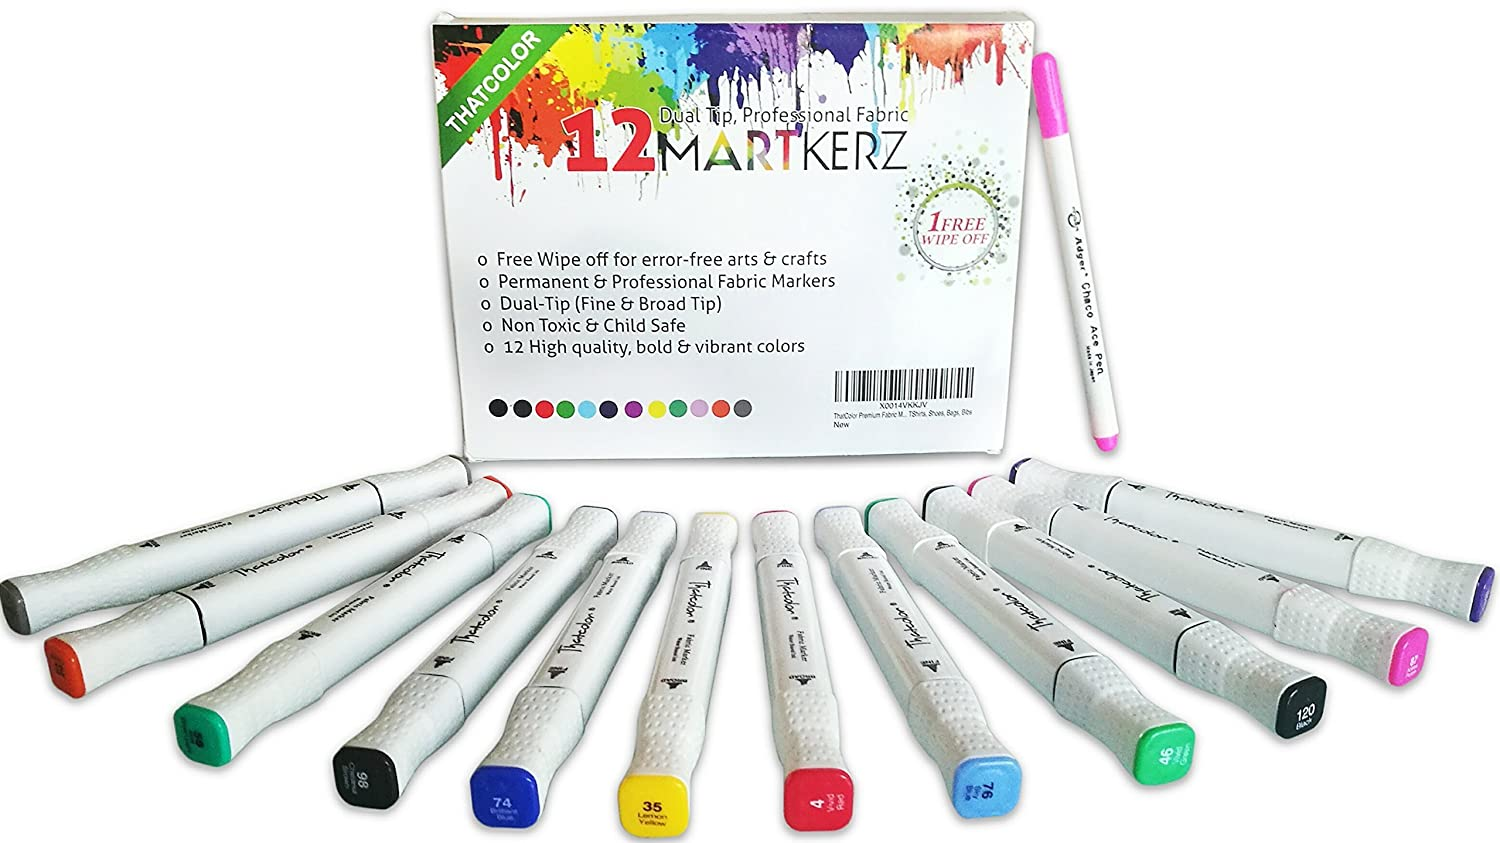 Thatcolor Fabric Markers All-in-One Set: 12 Dual Tip, Non Toxic, Permanent Graffiti Coloring Pens, Disappearing Ink Pen, Iron Transfer Sticker Martkerz® DT-W-12